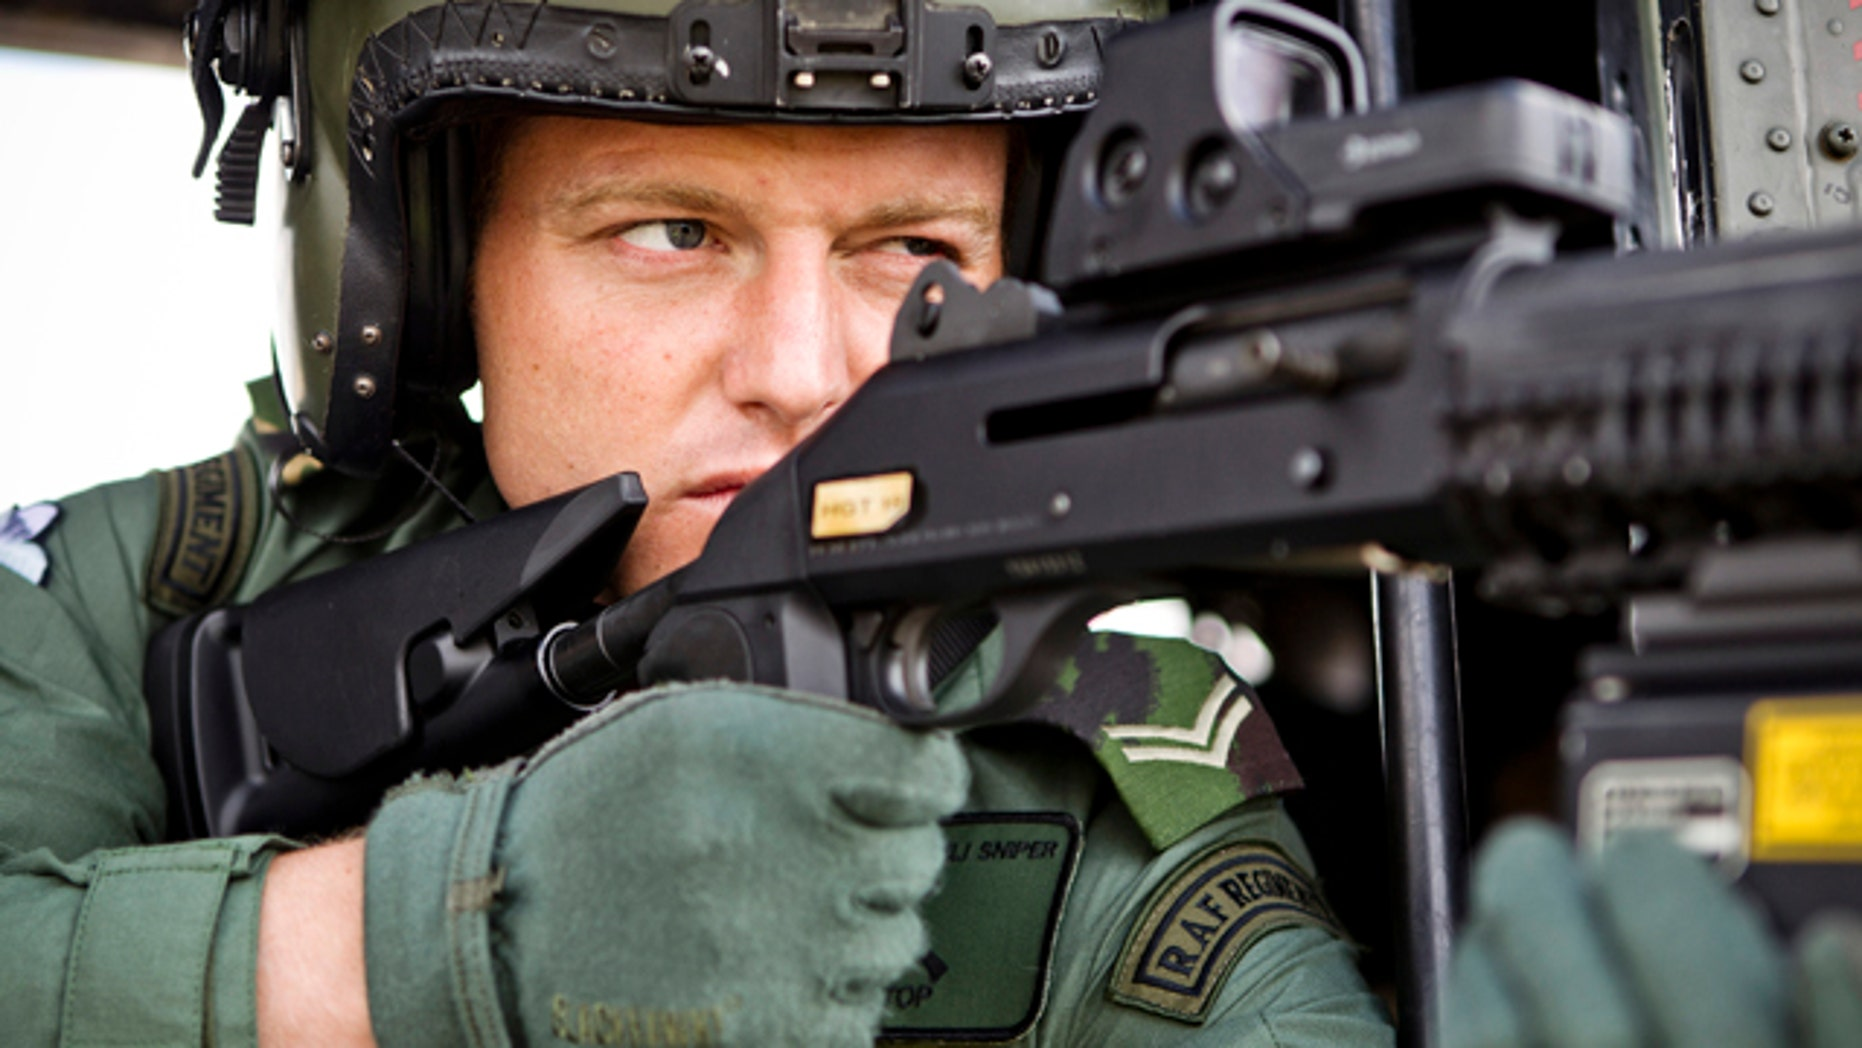 July 13, 2012: In this photo released by the British MOD, a sniper with Royal Air Force Regiment Sniper, sights through his scope from inside an RAF Puma helicopter at RAF Northolt ahead of carrying out air security duties for Op Olympic, in London.